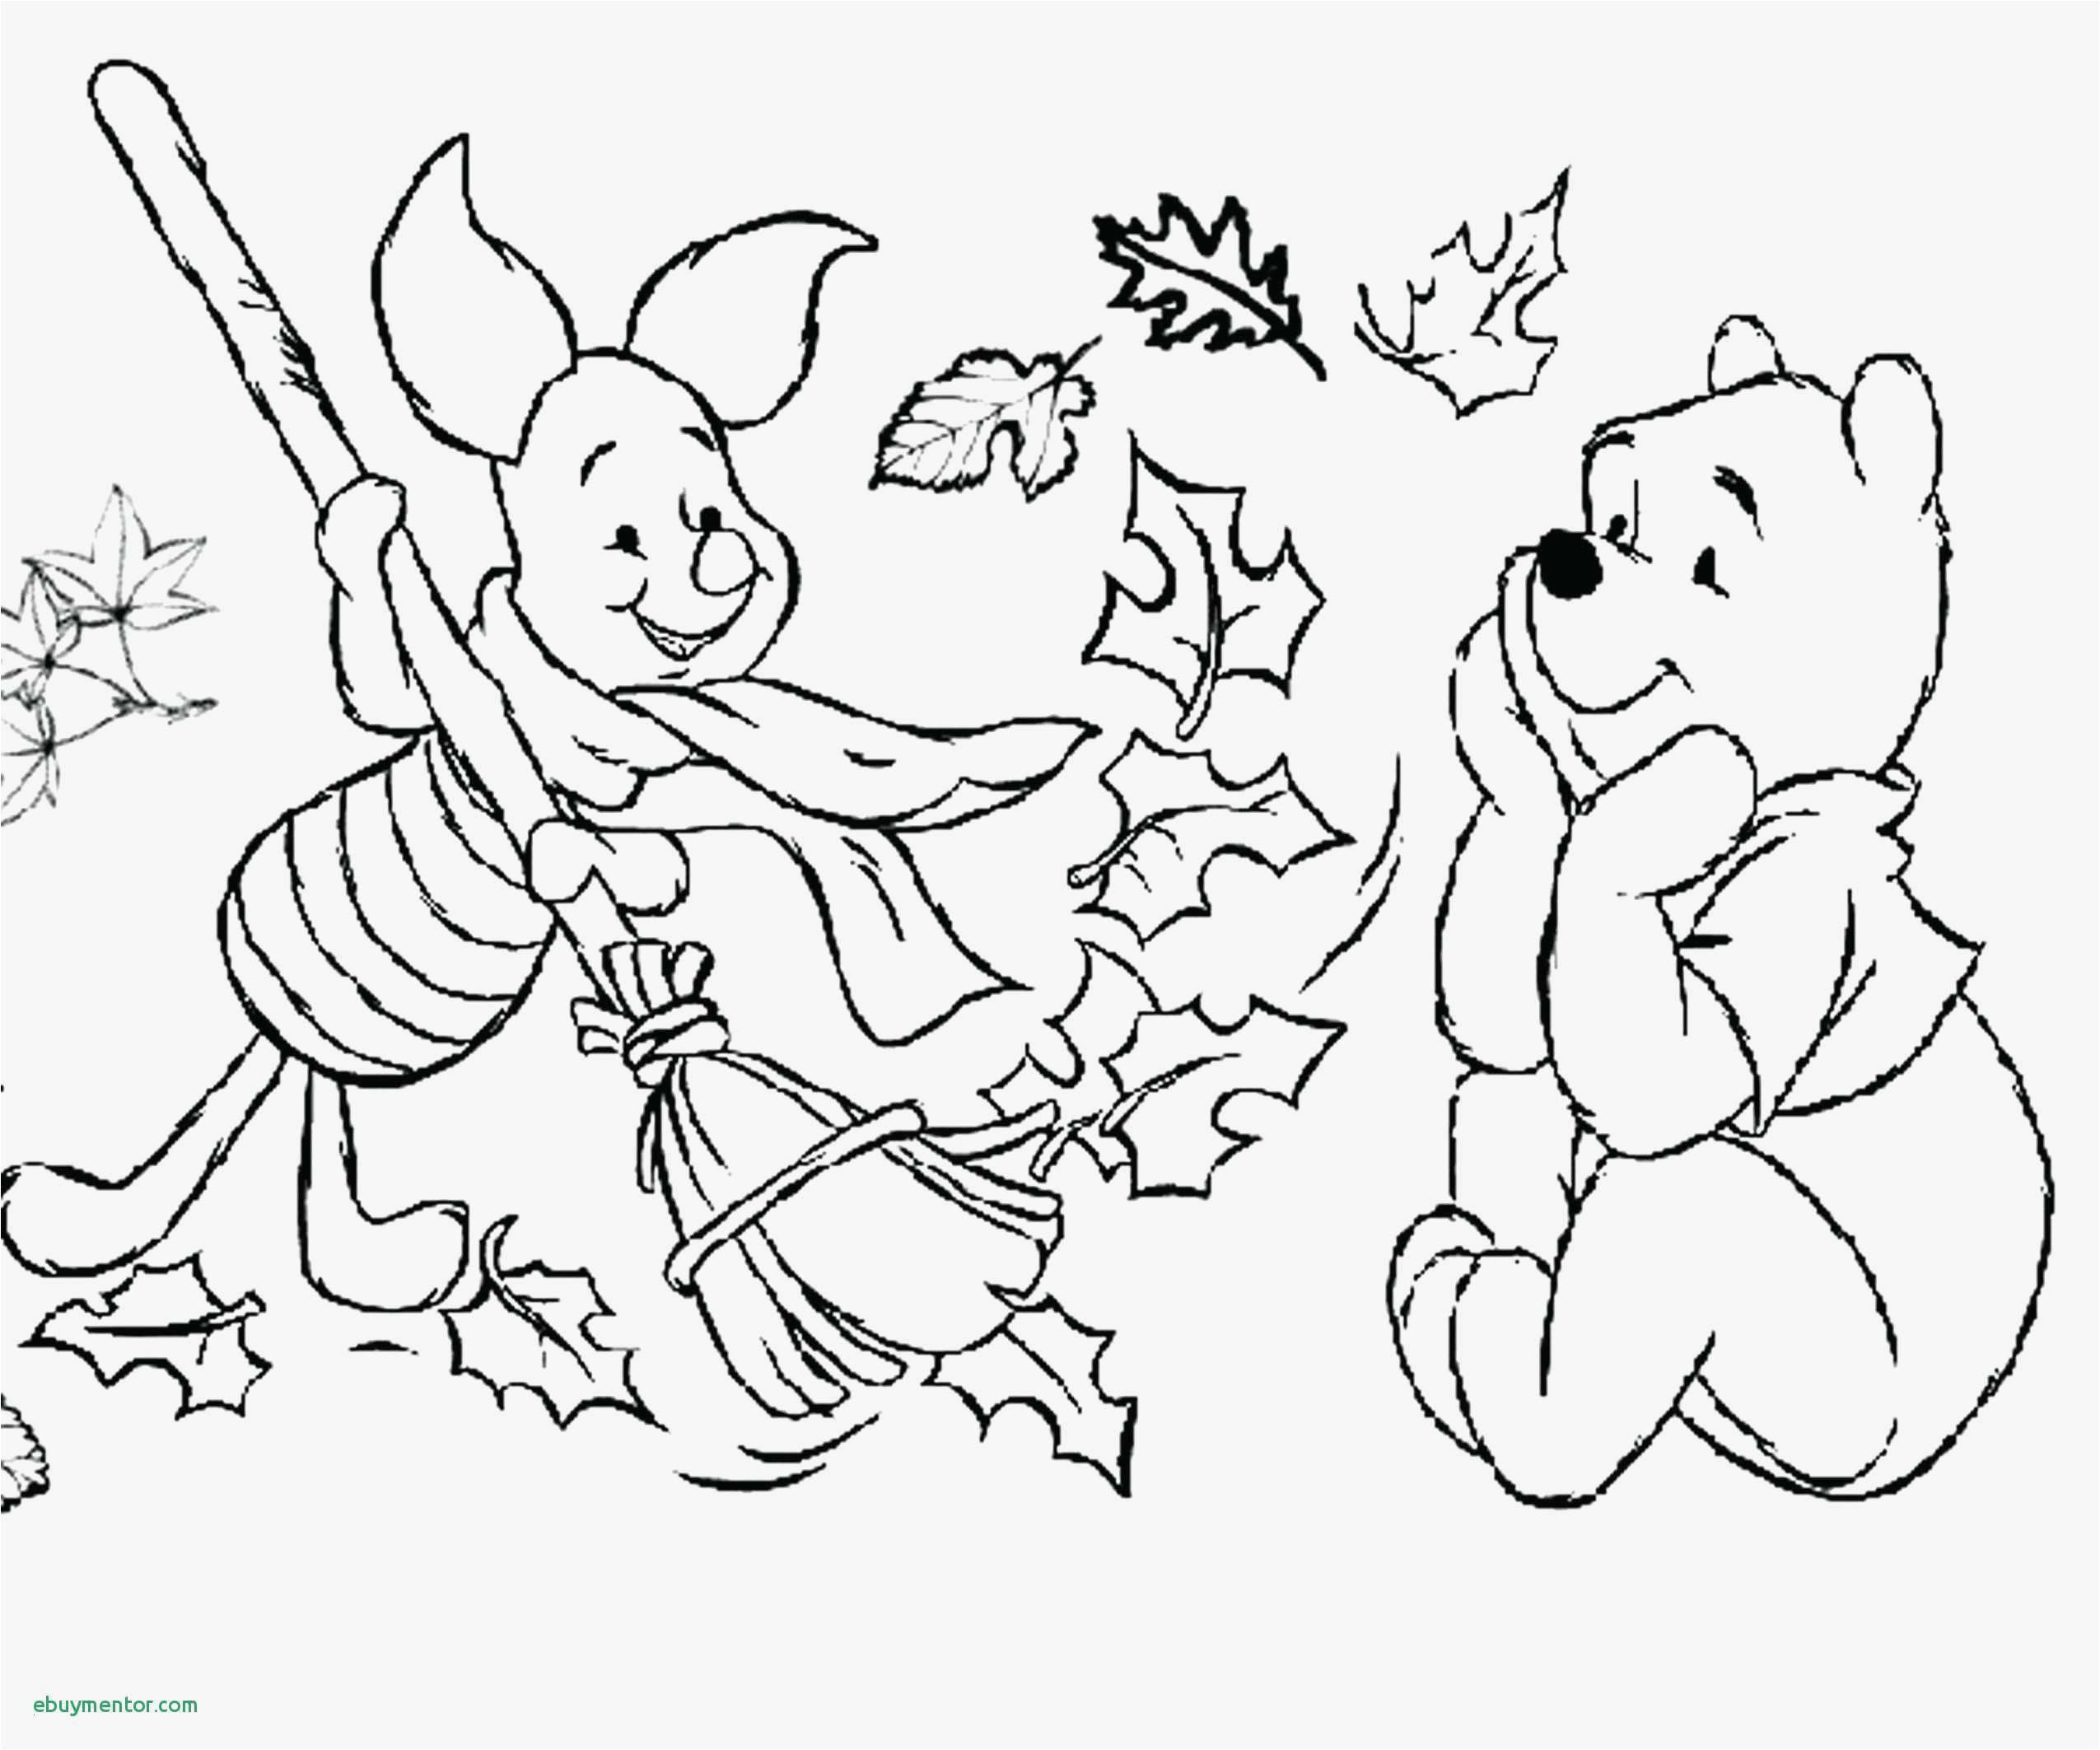 Framed Coloring Pages  Download 1g - Free Download